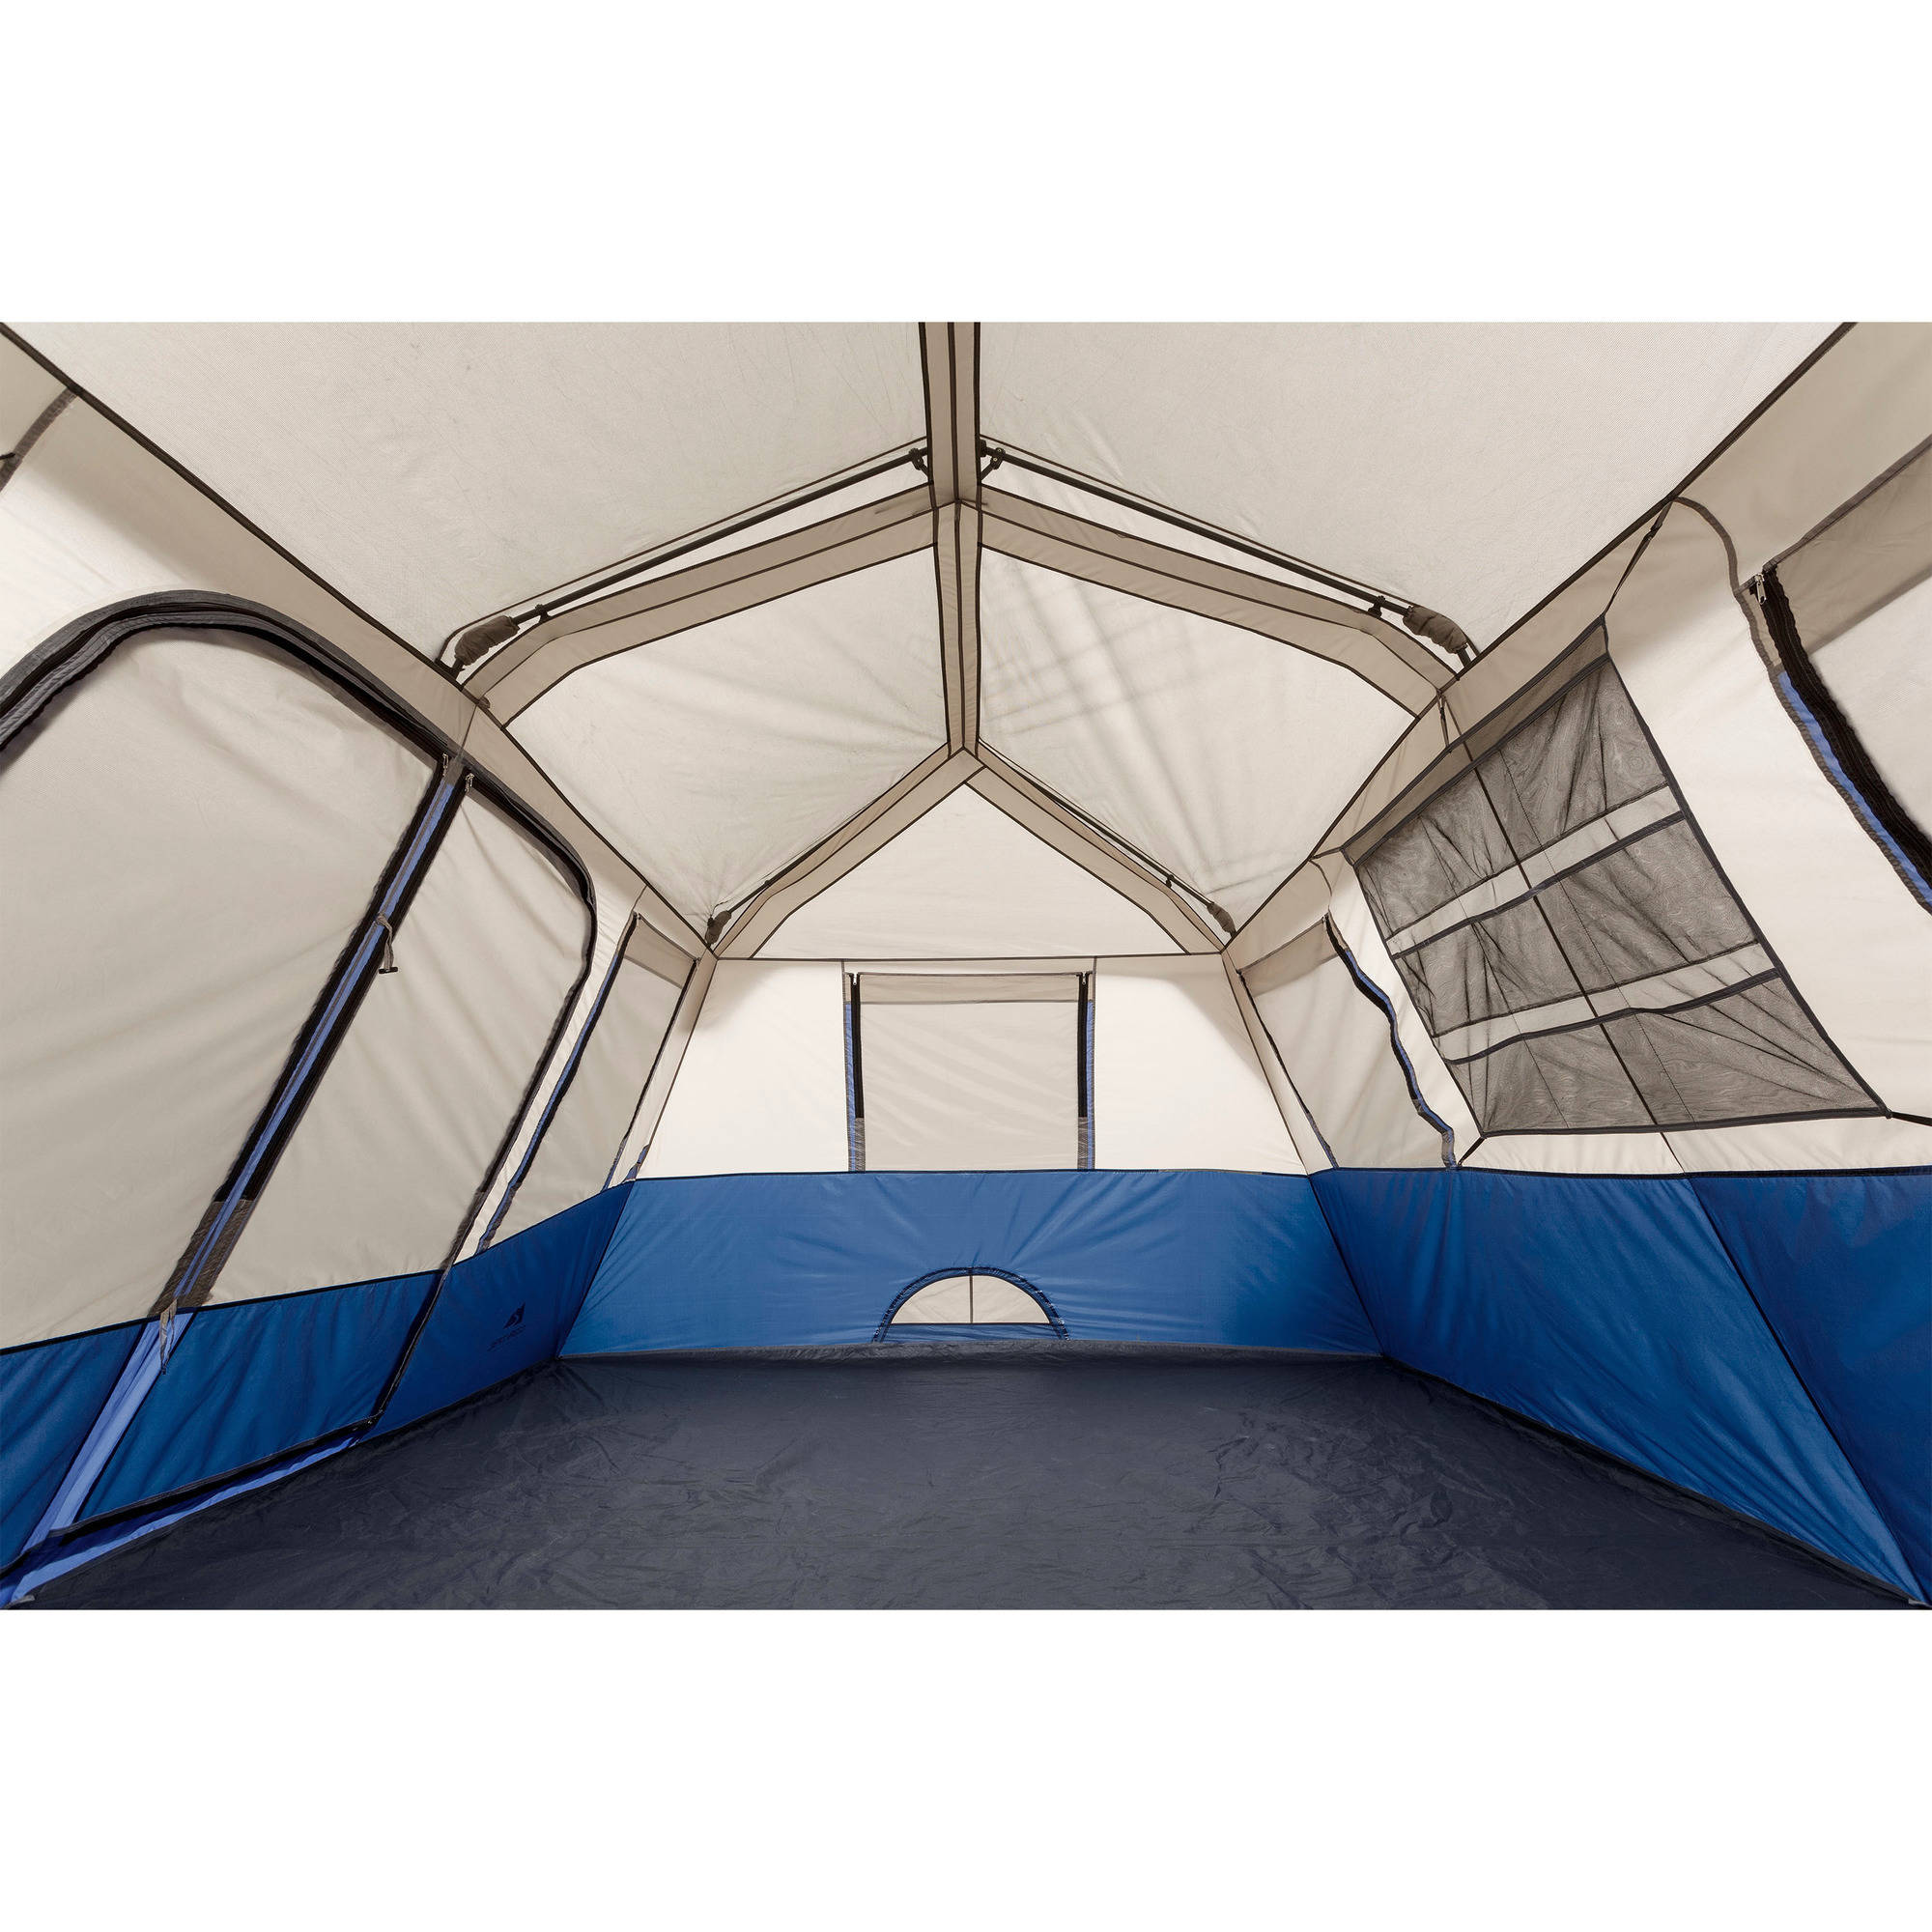 Ozark Trail 10 Person 2 Room Instant Cabin Tent   Walmart.com